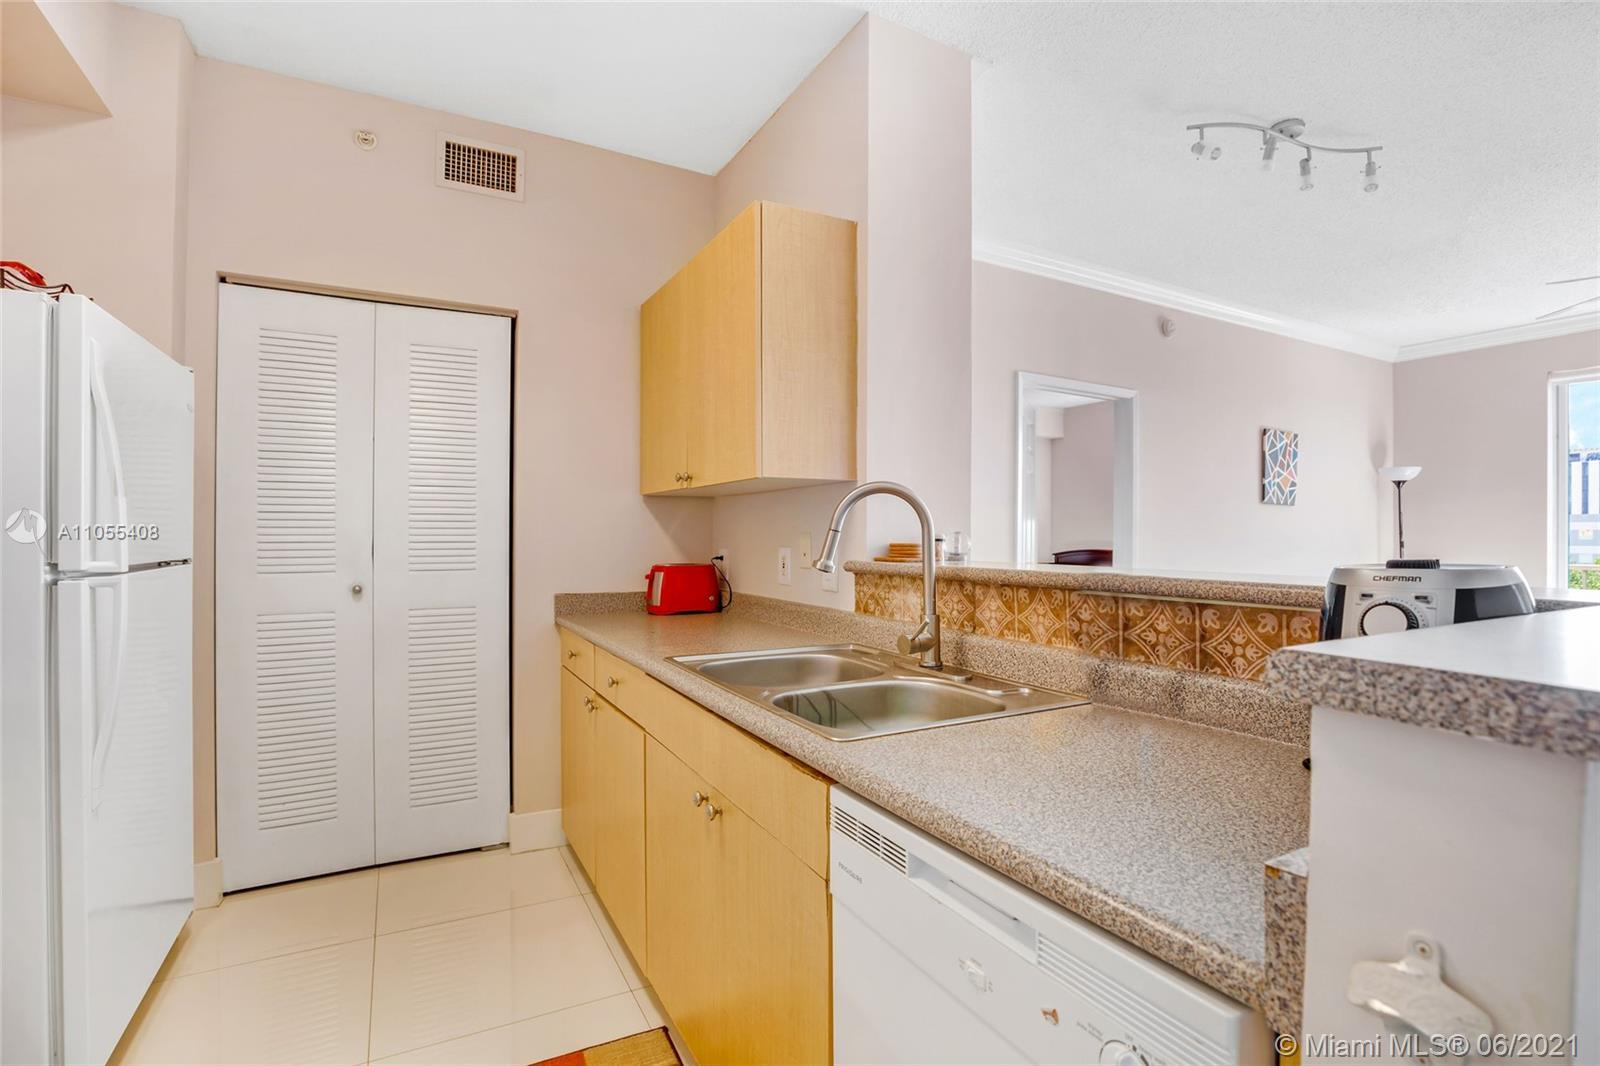 BEST CONDO AT REGENT PARK ,2/2 SPLIT PLAN UPDATED !!! RENTED YEARLY FOR $1800,GREAT TENANTS